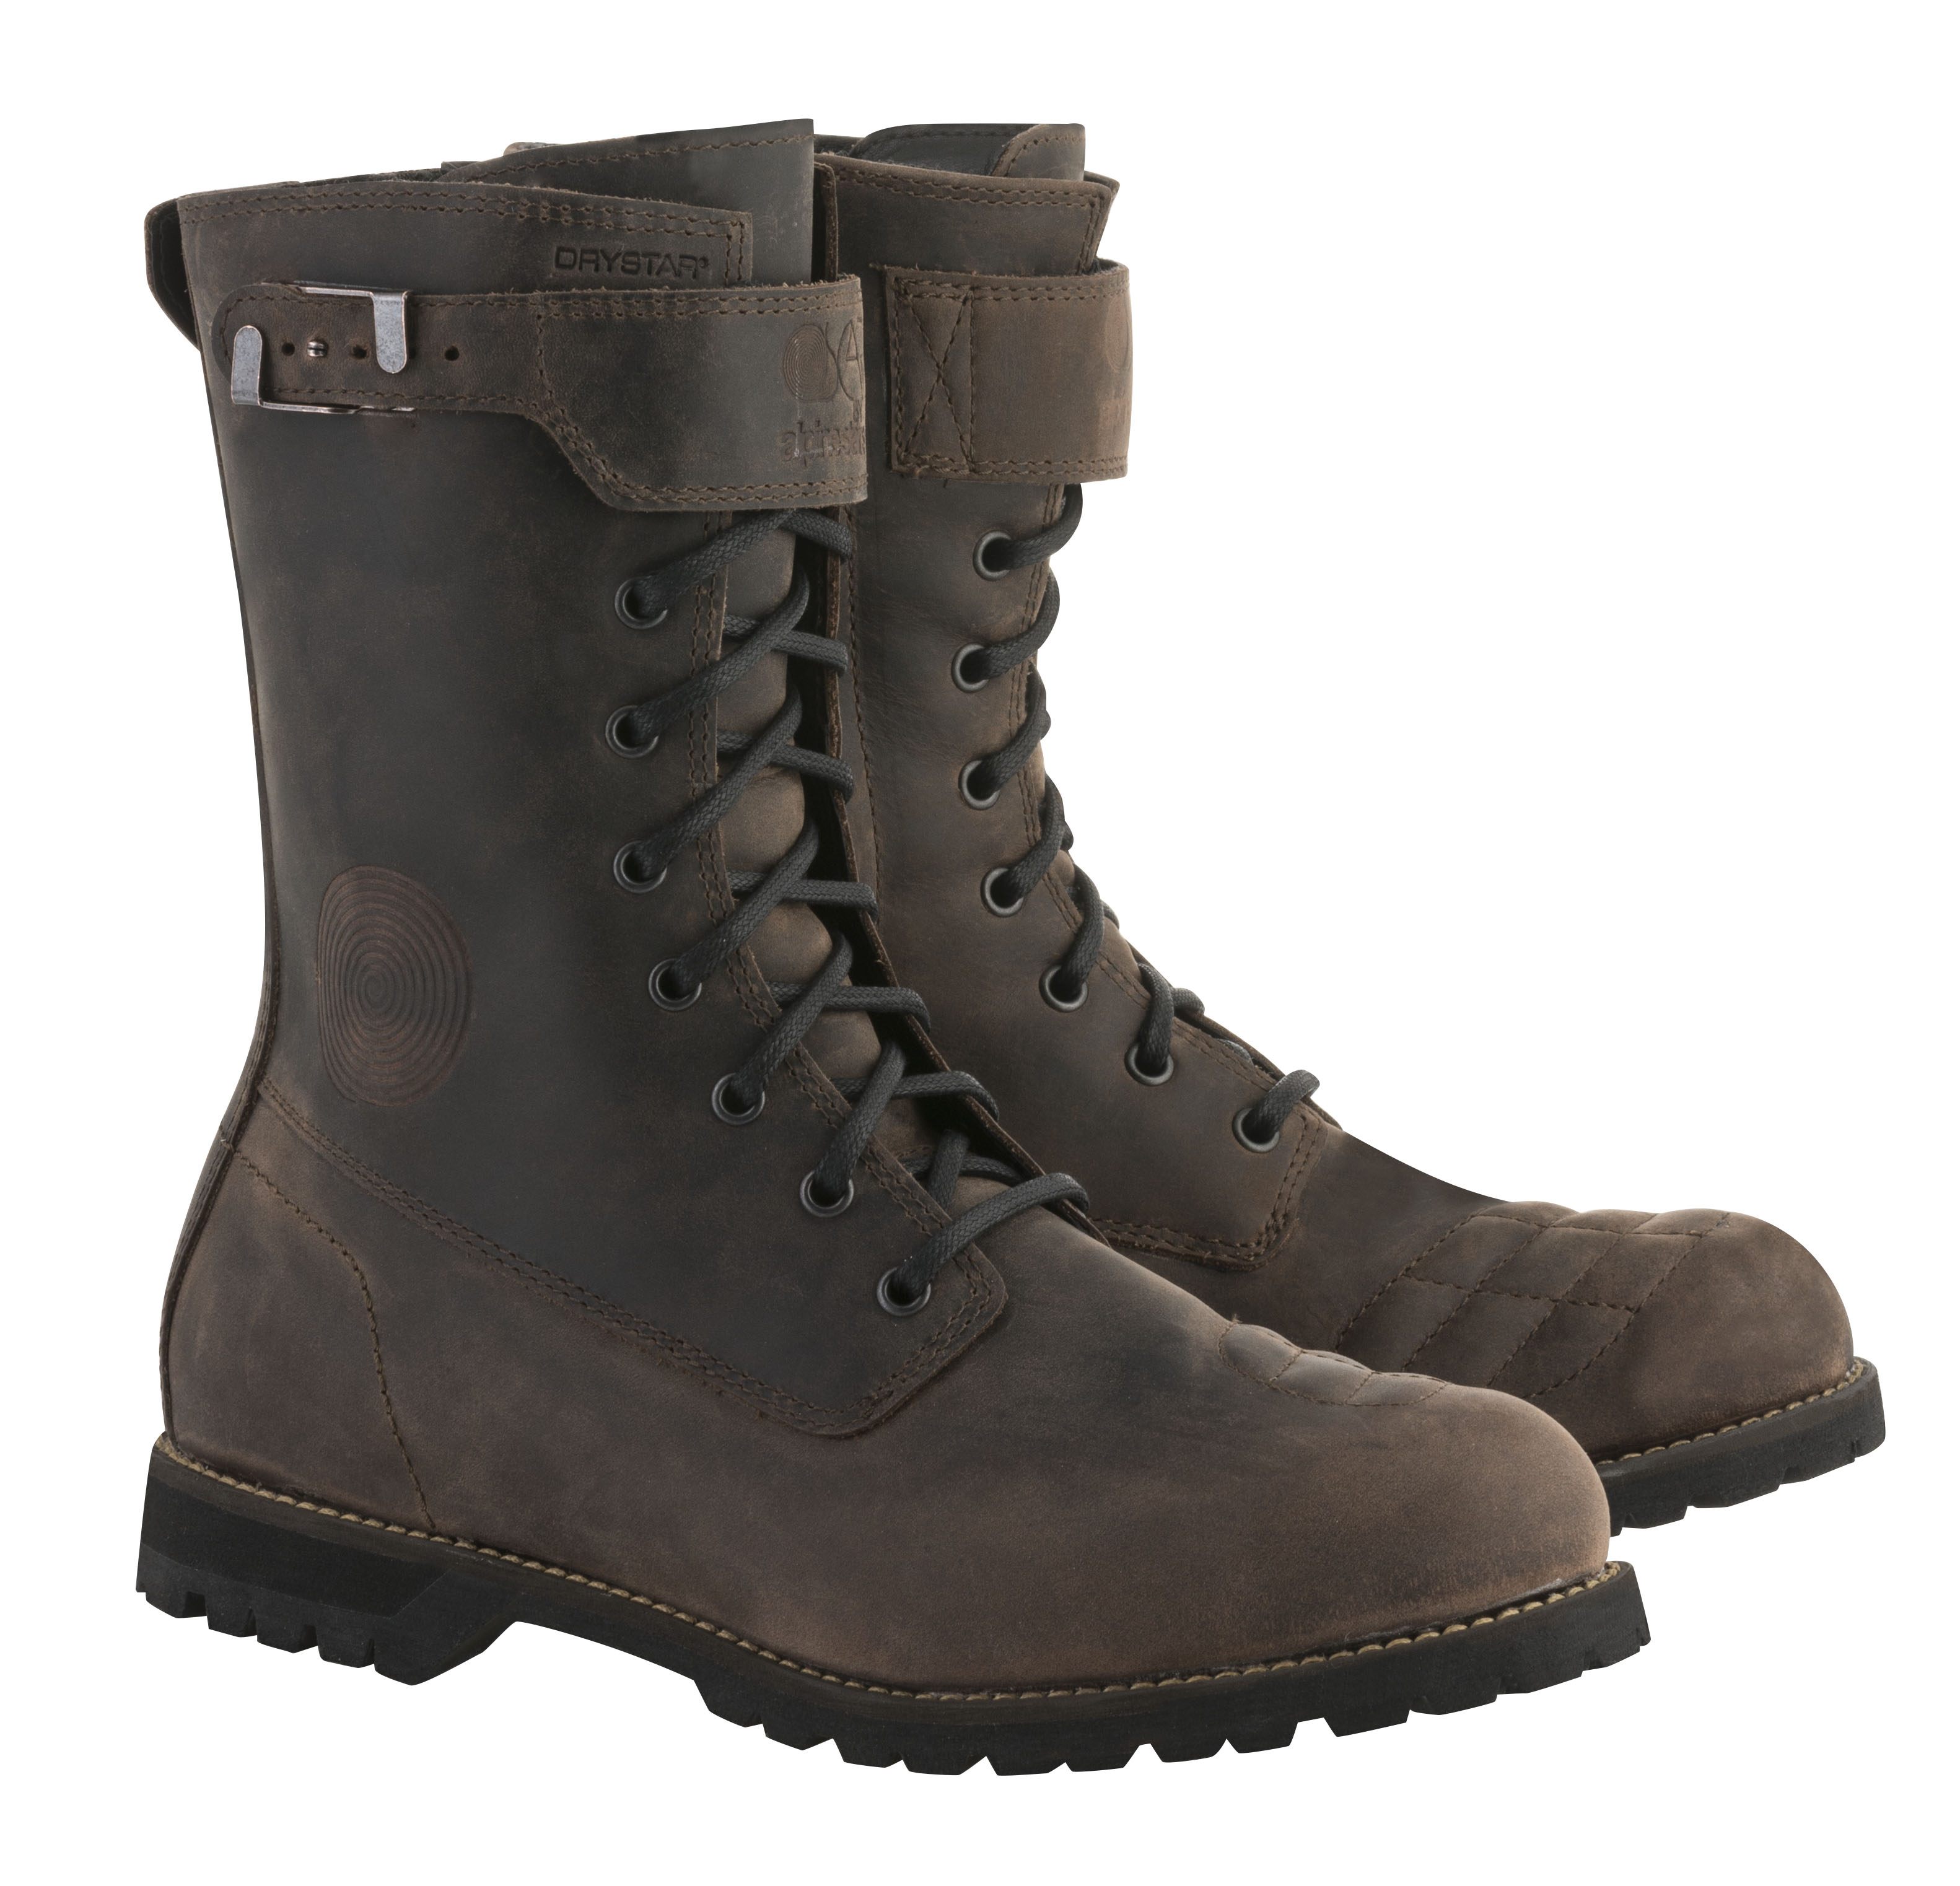 eaa6e4e6dfb939 A vintage-military style boot with its roots in café-racer culture